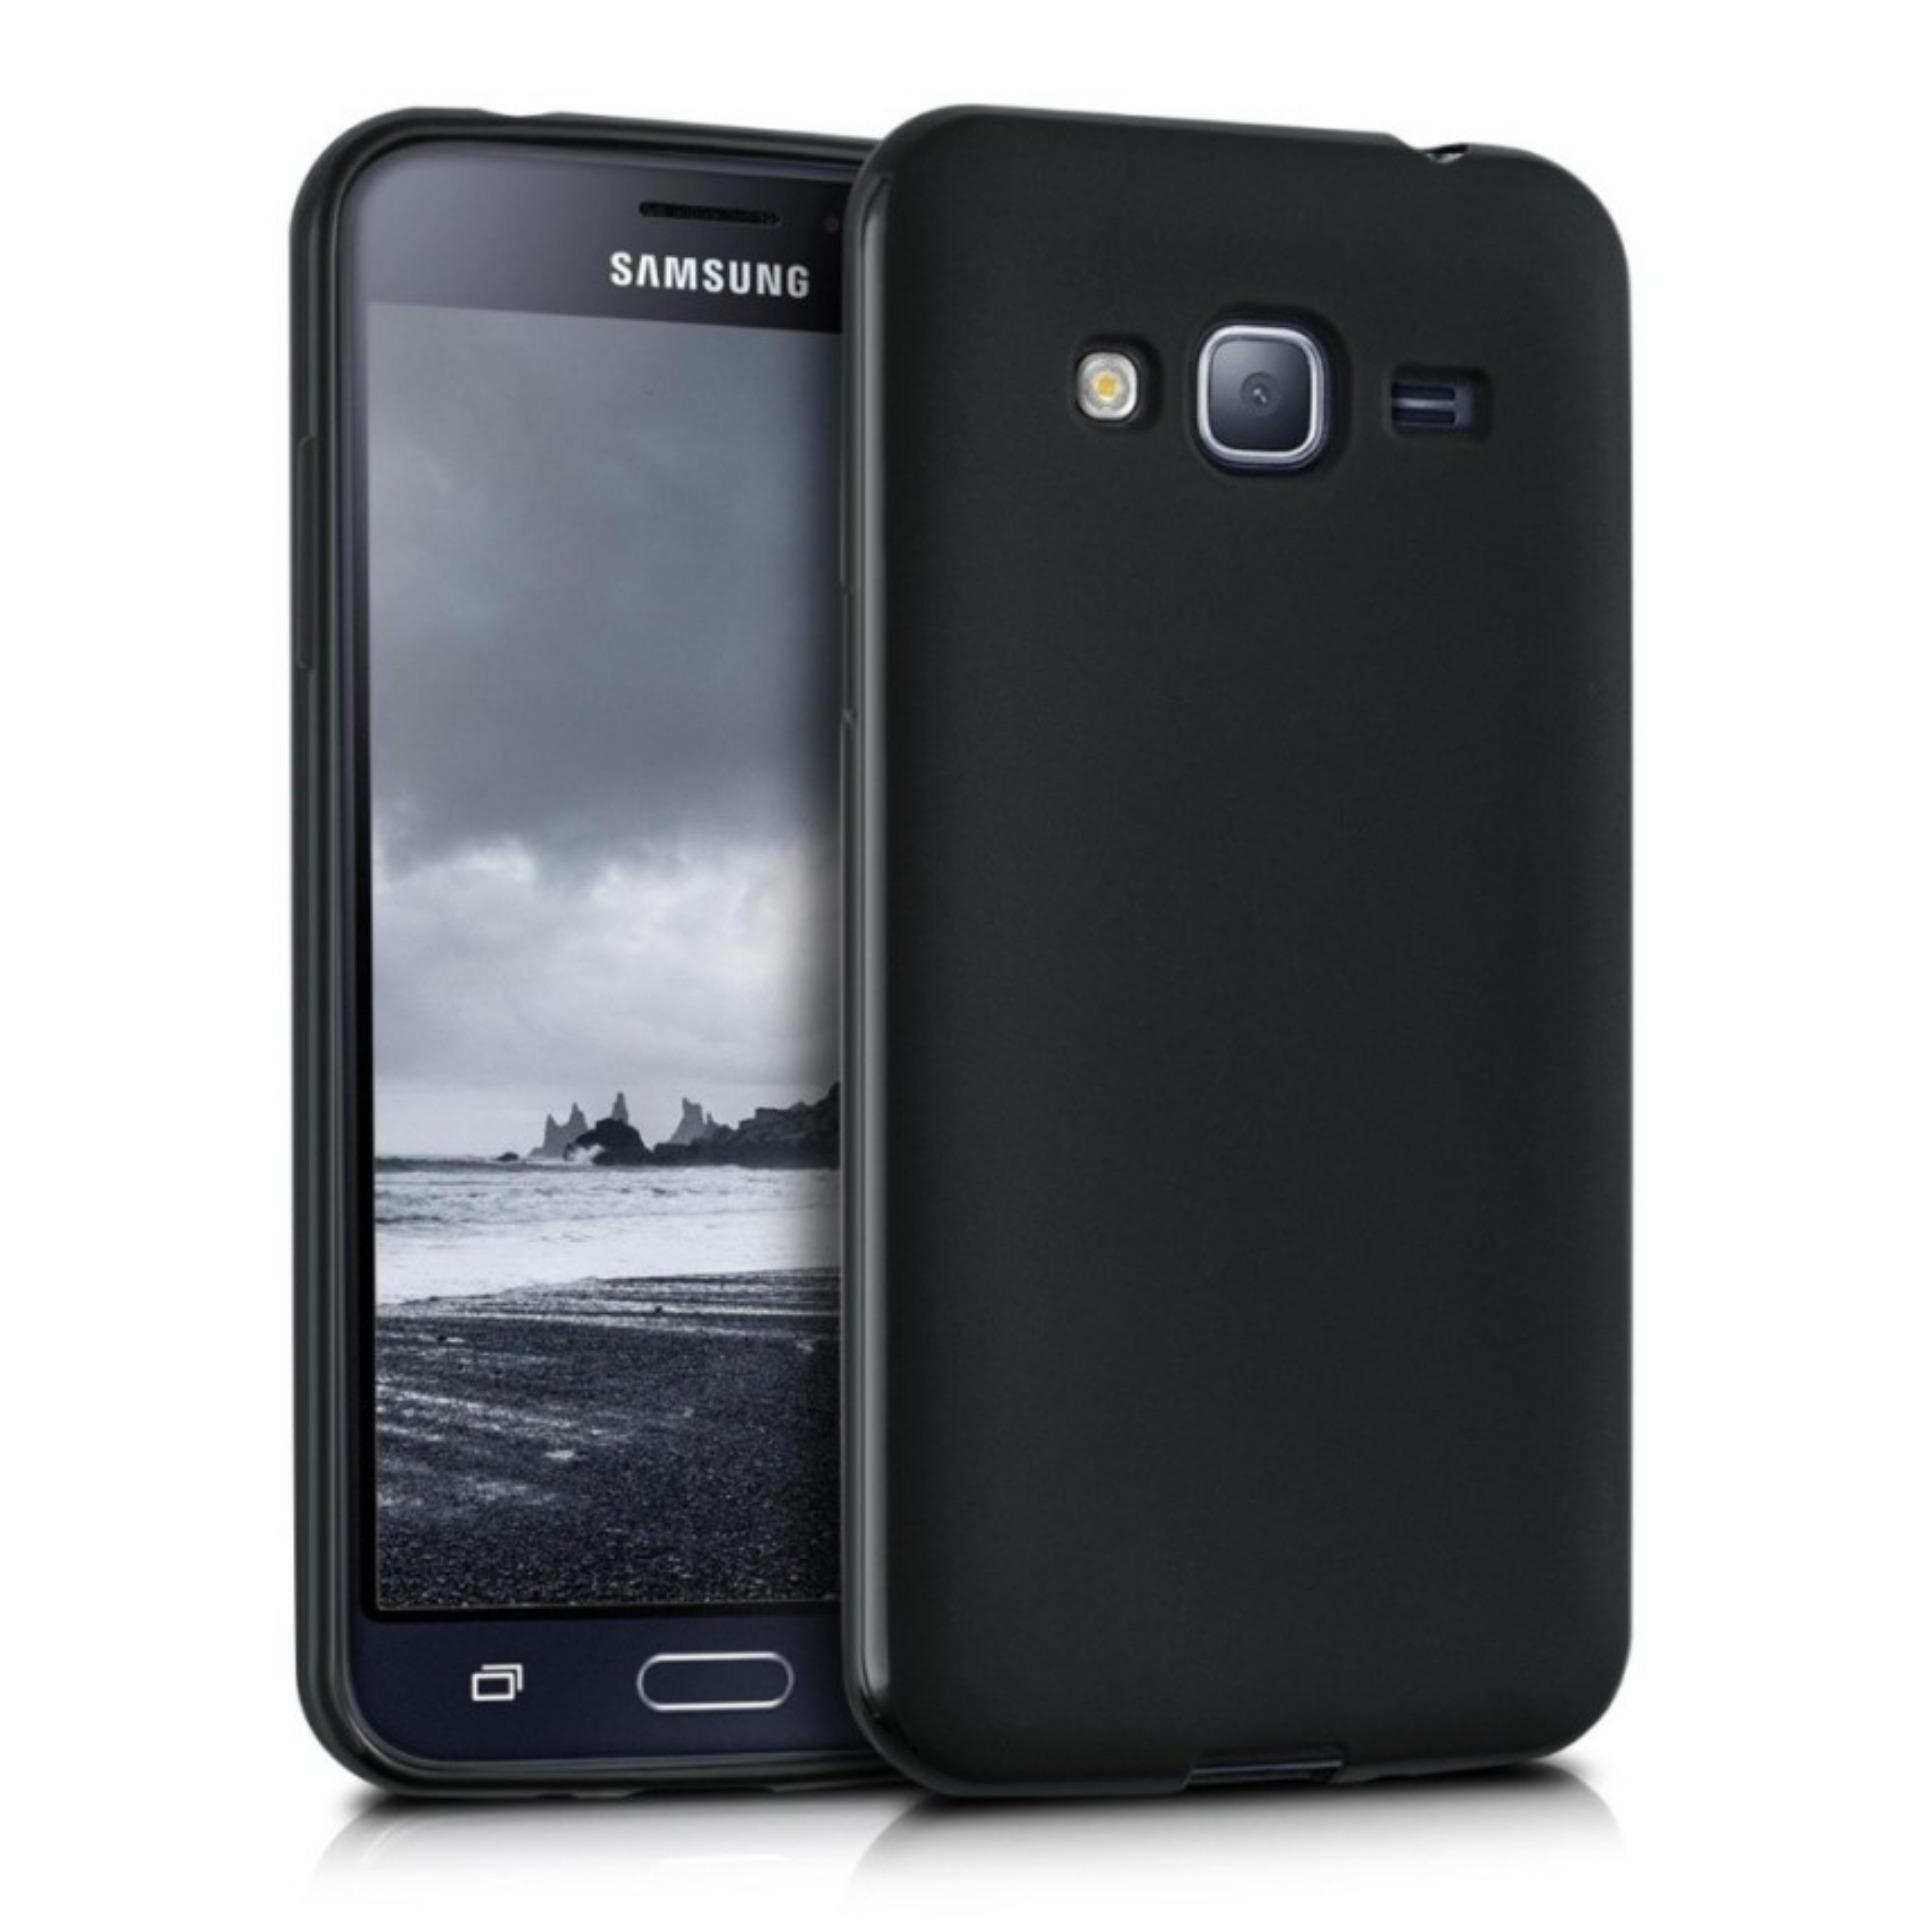 Kondom Hp / Softcase / Casing Ultraslim Case Matte Black Space Untuk Samsung Galaxy Grand 1 / i9082 / Grand Duos / Grand Z